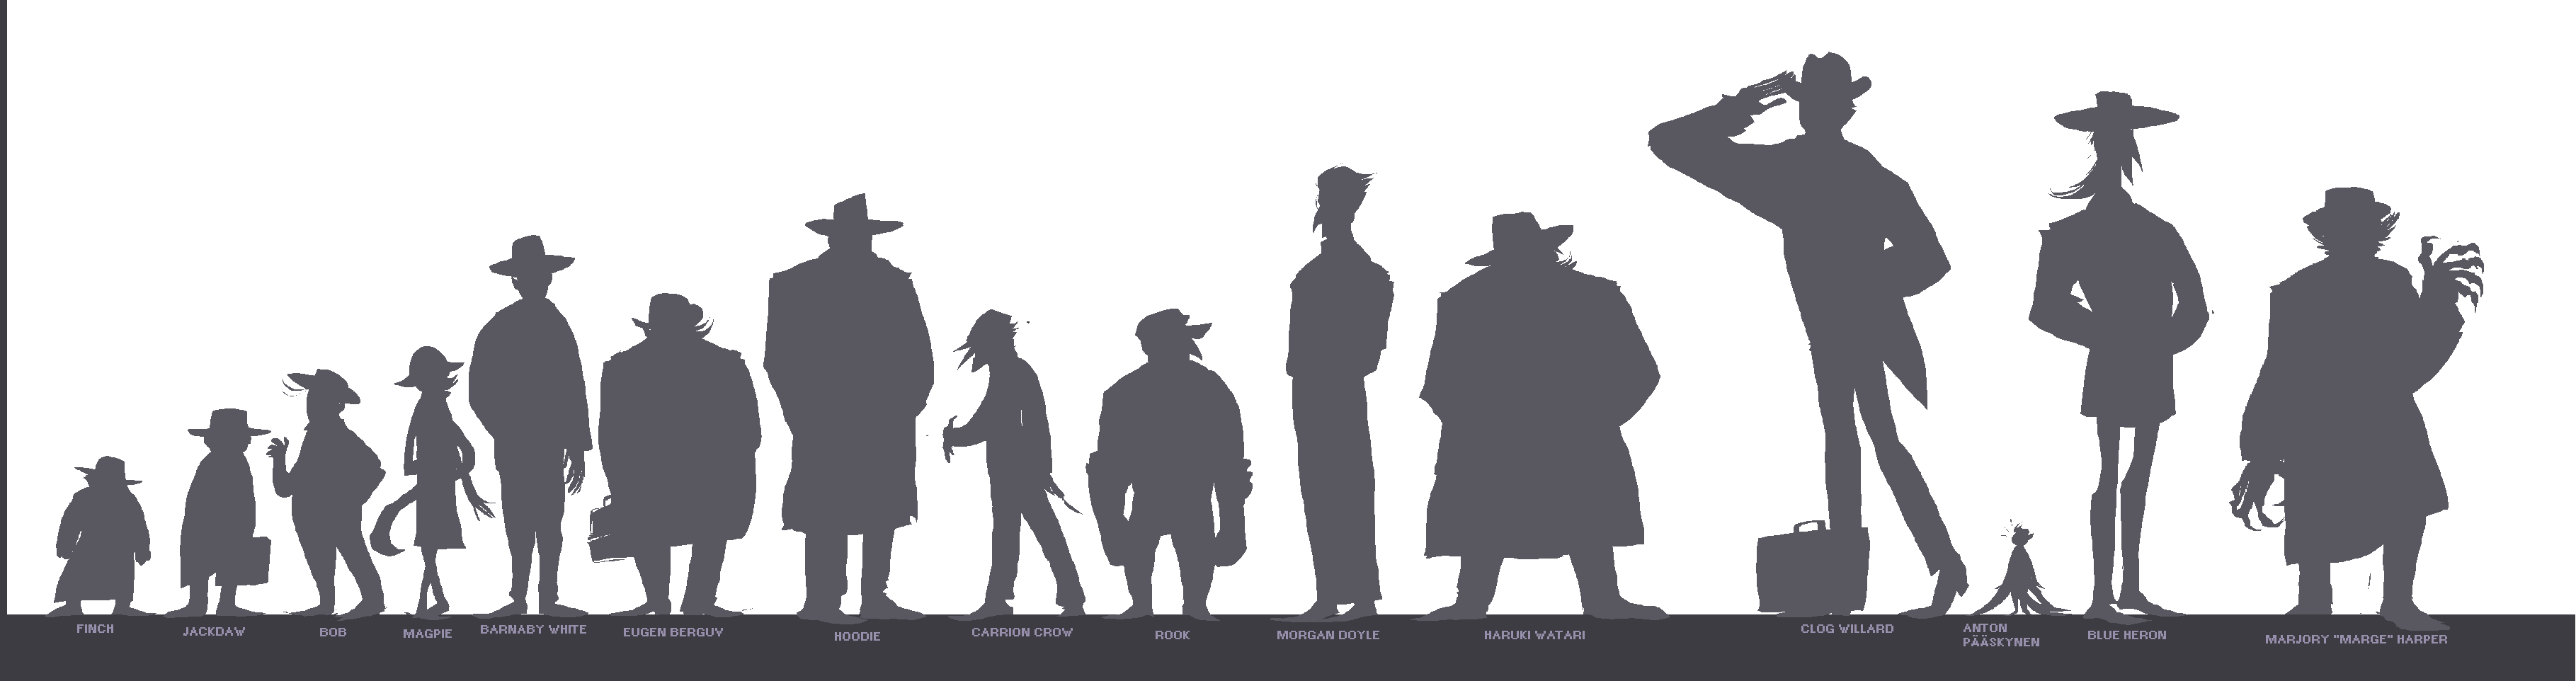 bird people height chart by Spoonfayse - 49.0KB